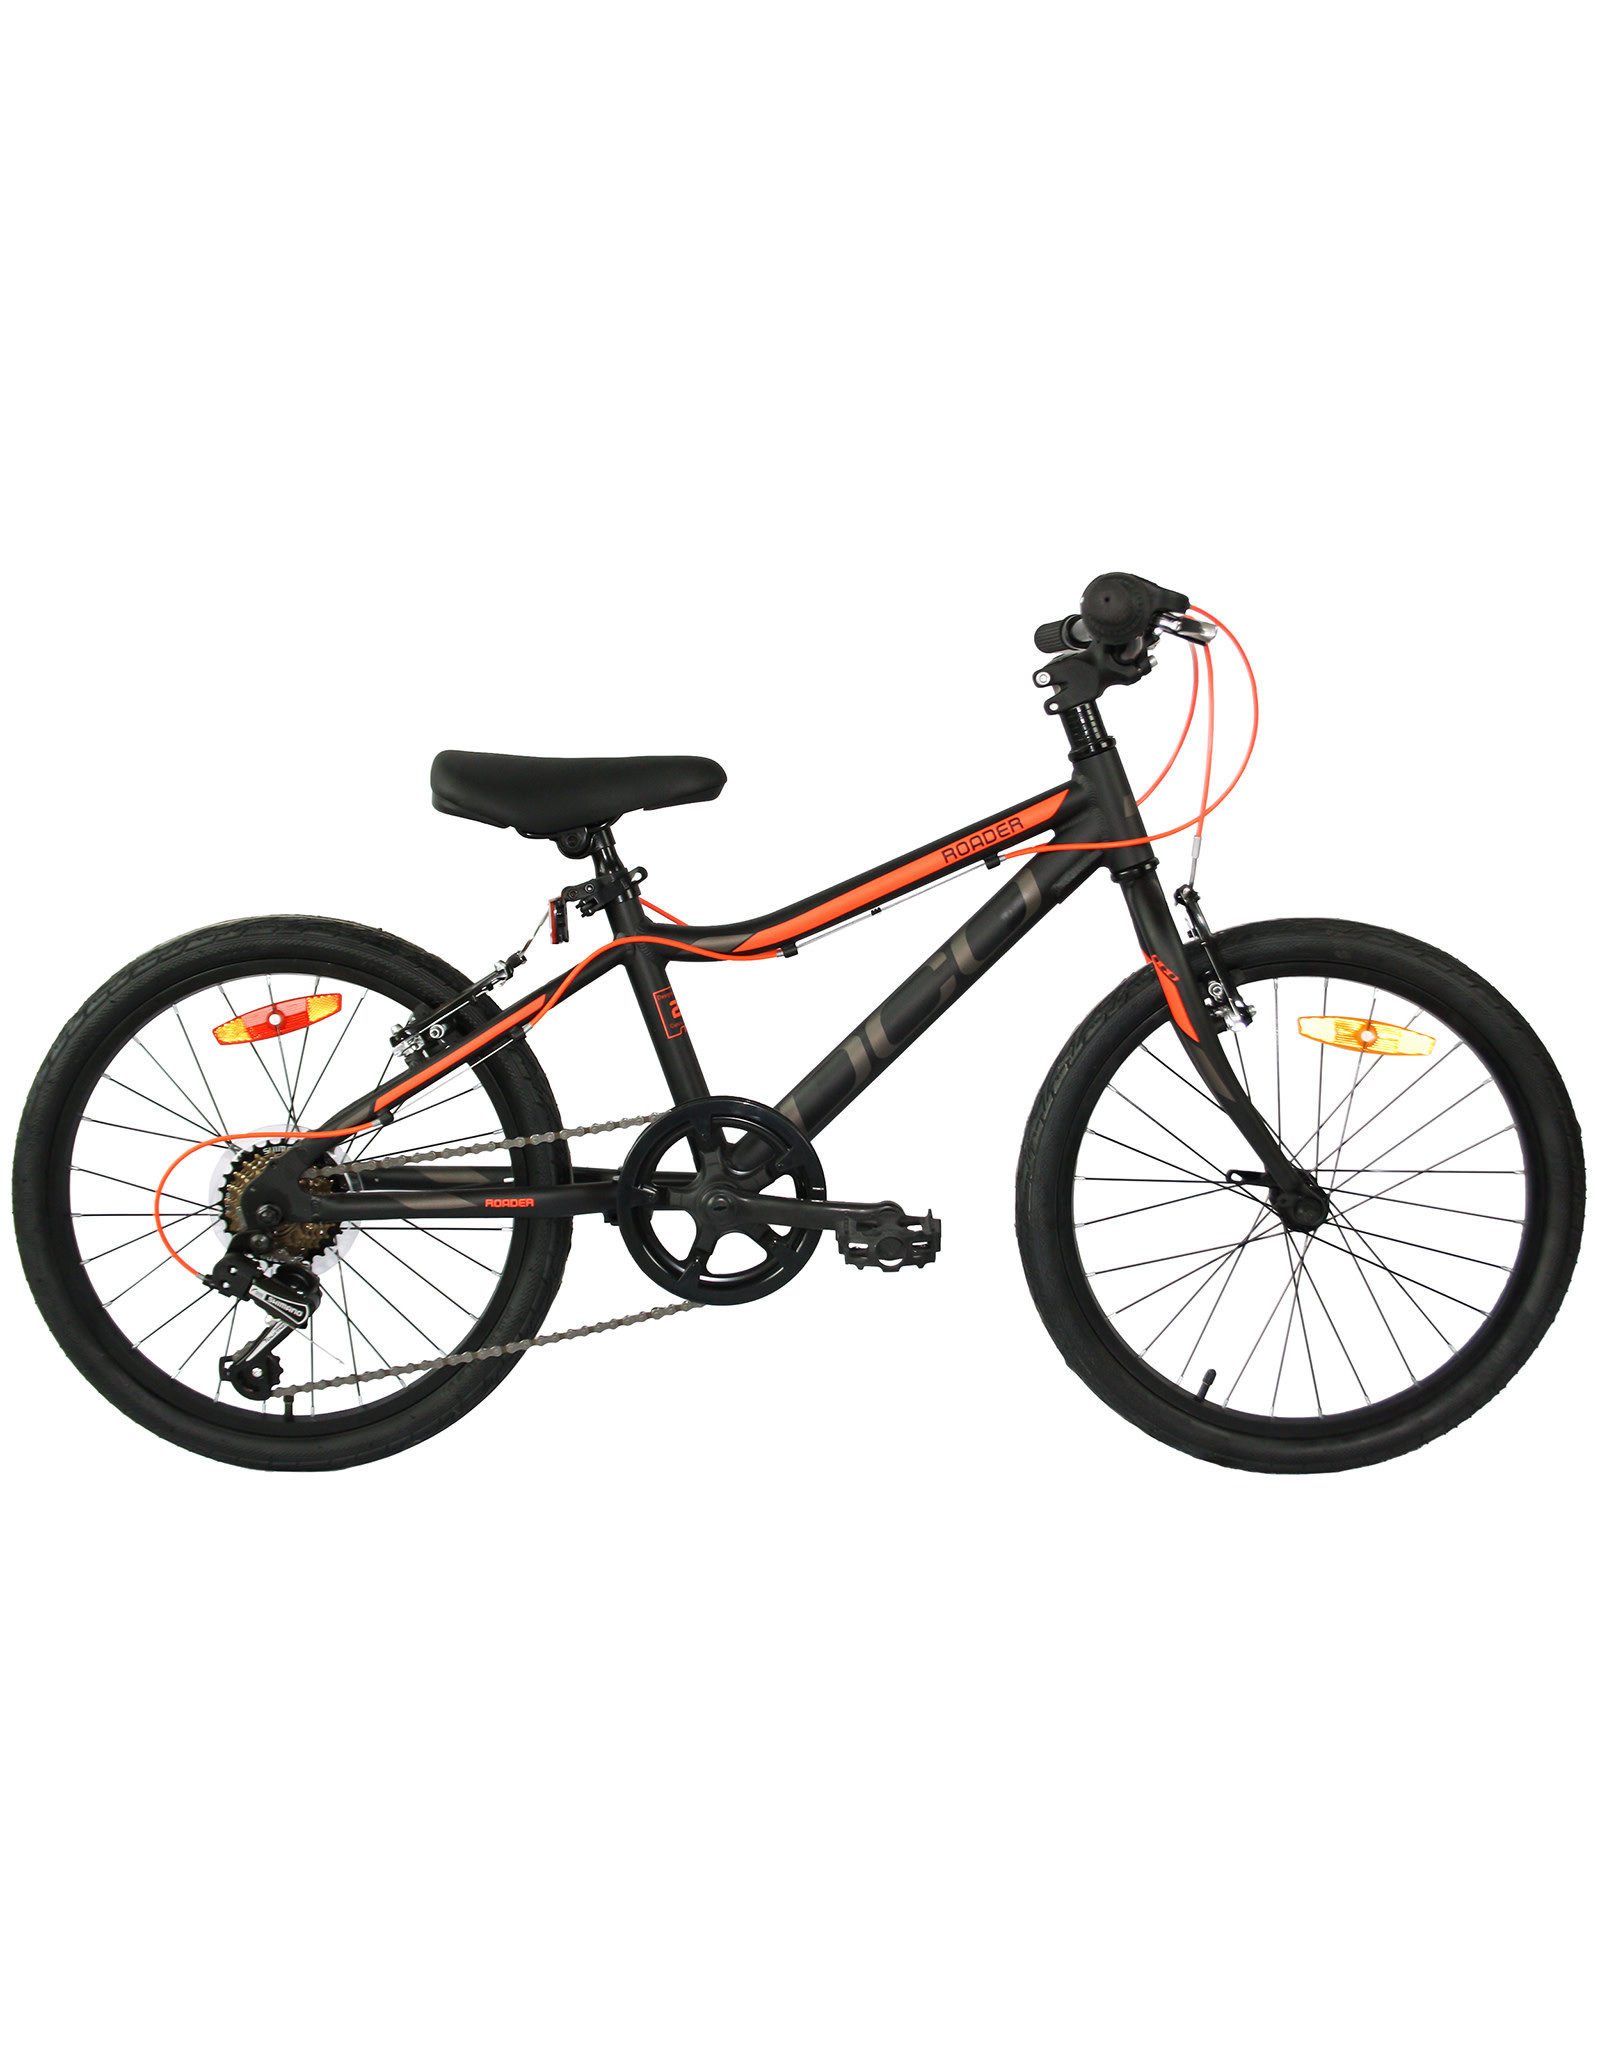 "DCO DCO ROADER 20"" NOIR ORANGE MAT vélo junior"